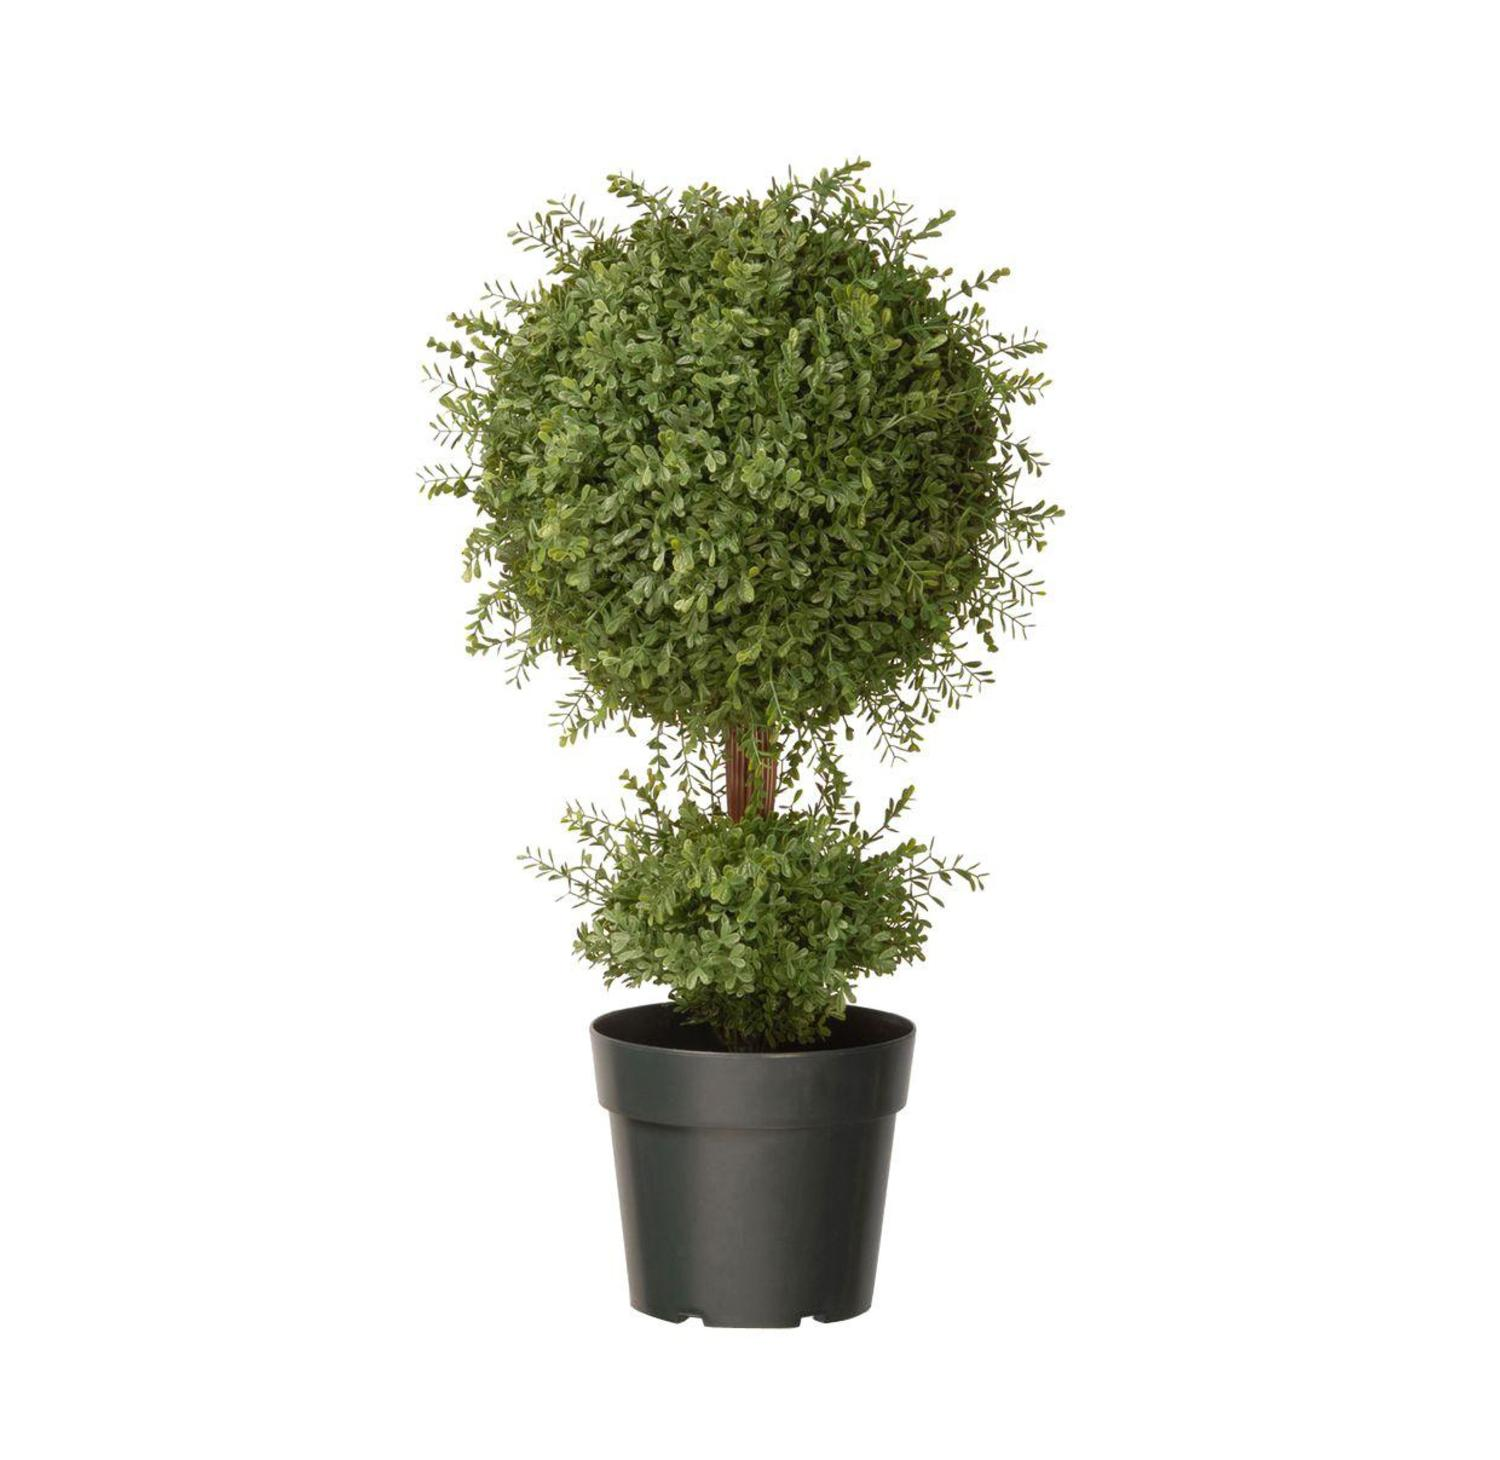 "30"" Potted Artificial Two-Tone Green Mini Tea Leaf Ball Topiary"